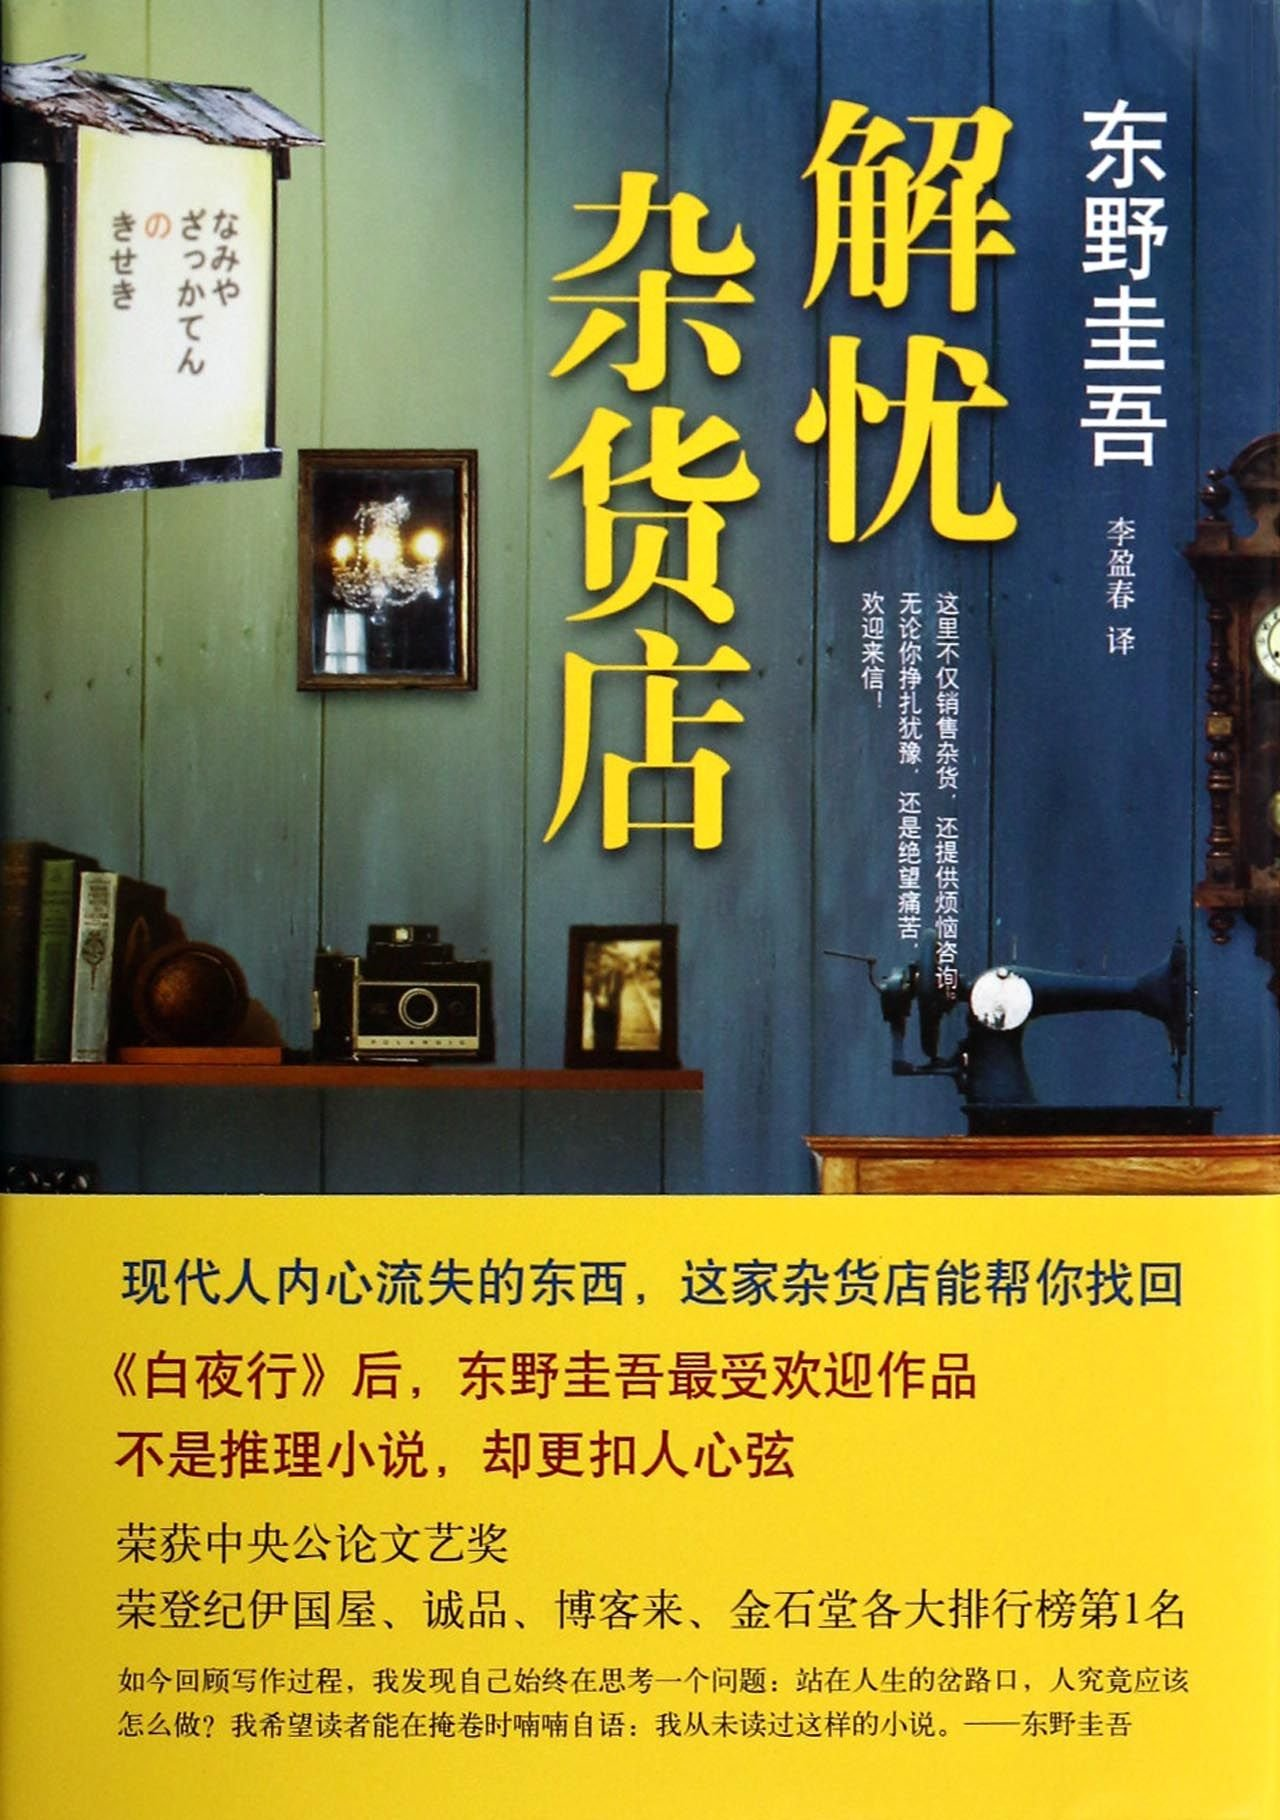 Dispel Melancholy Grocery Store (Chinese Edition) White Night Suspect Youth Psychology Best-selling Books By Keigo Higashino